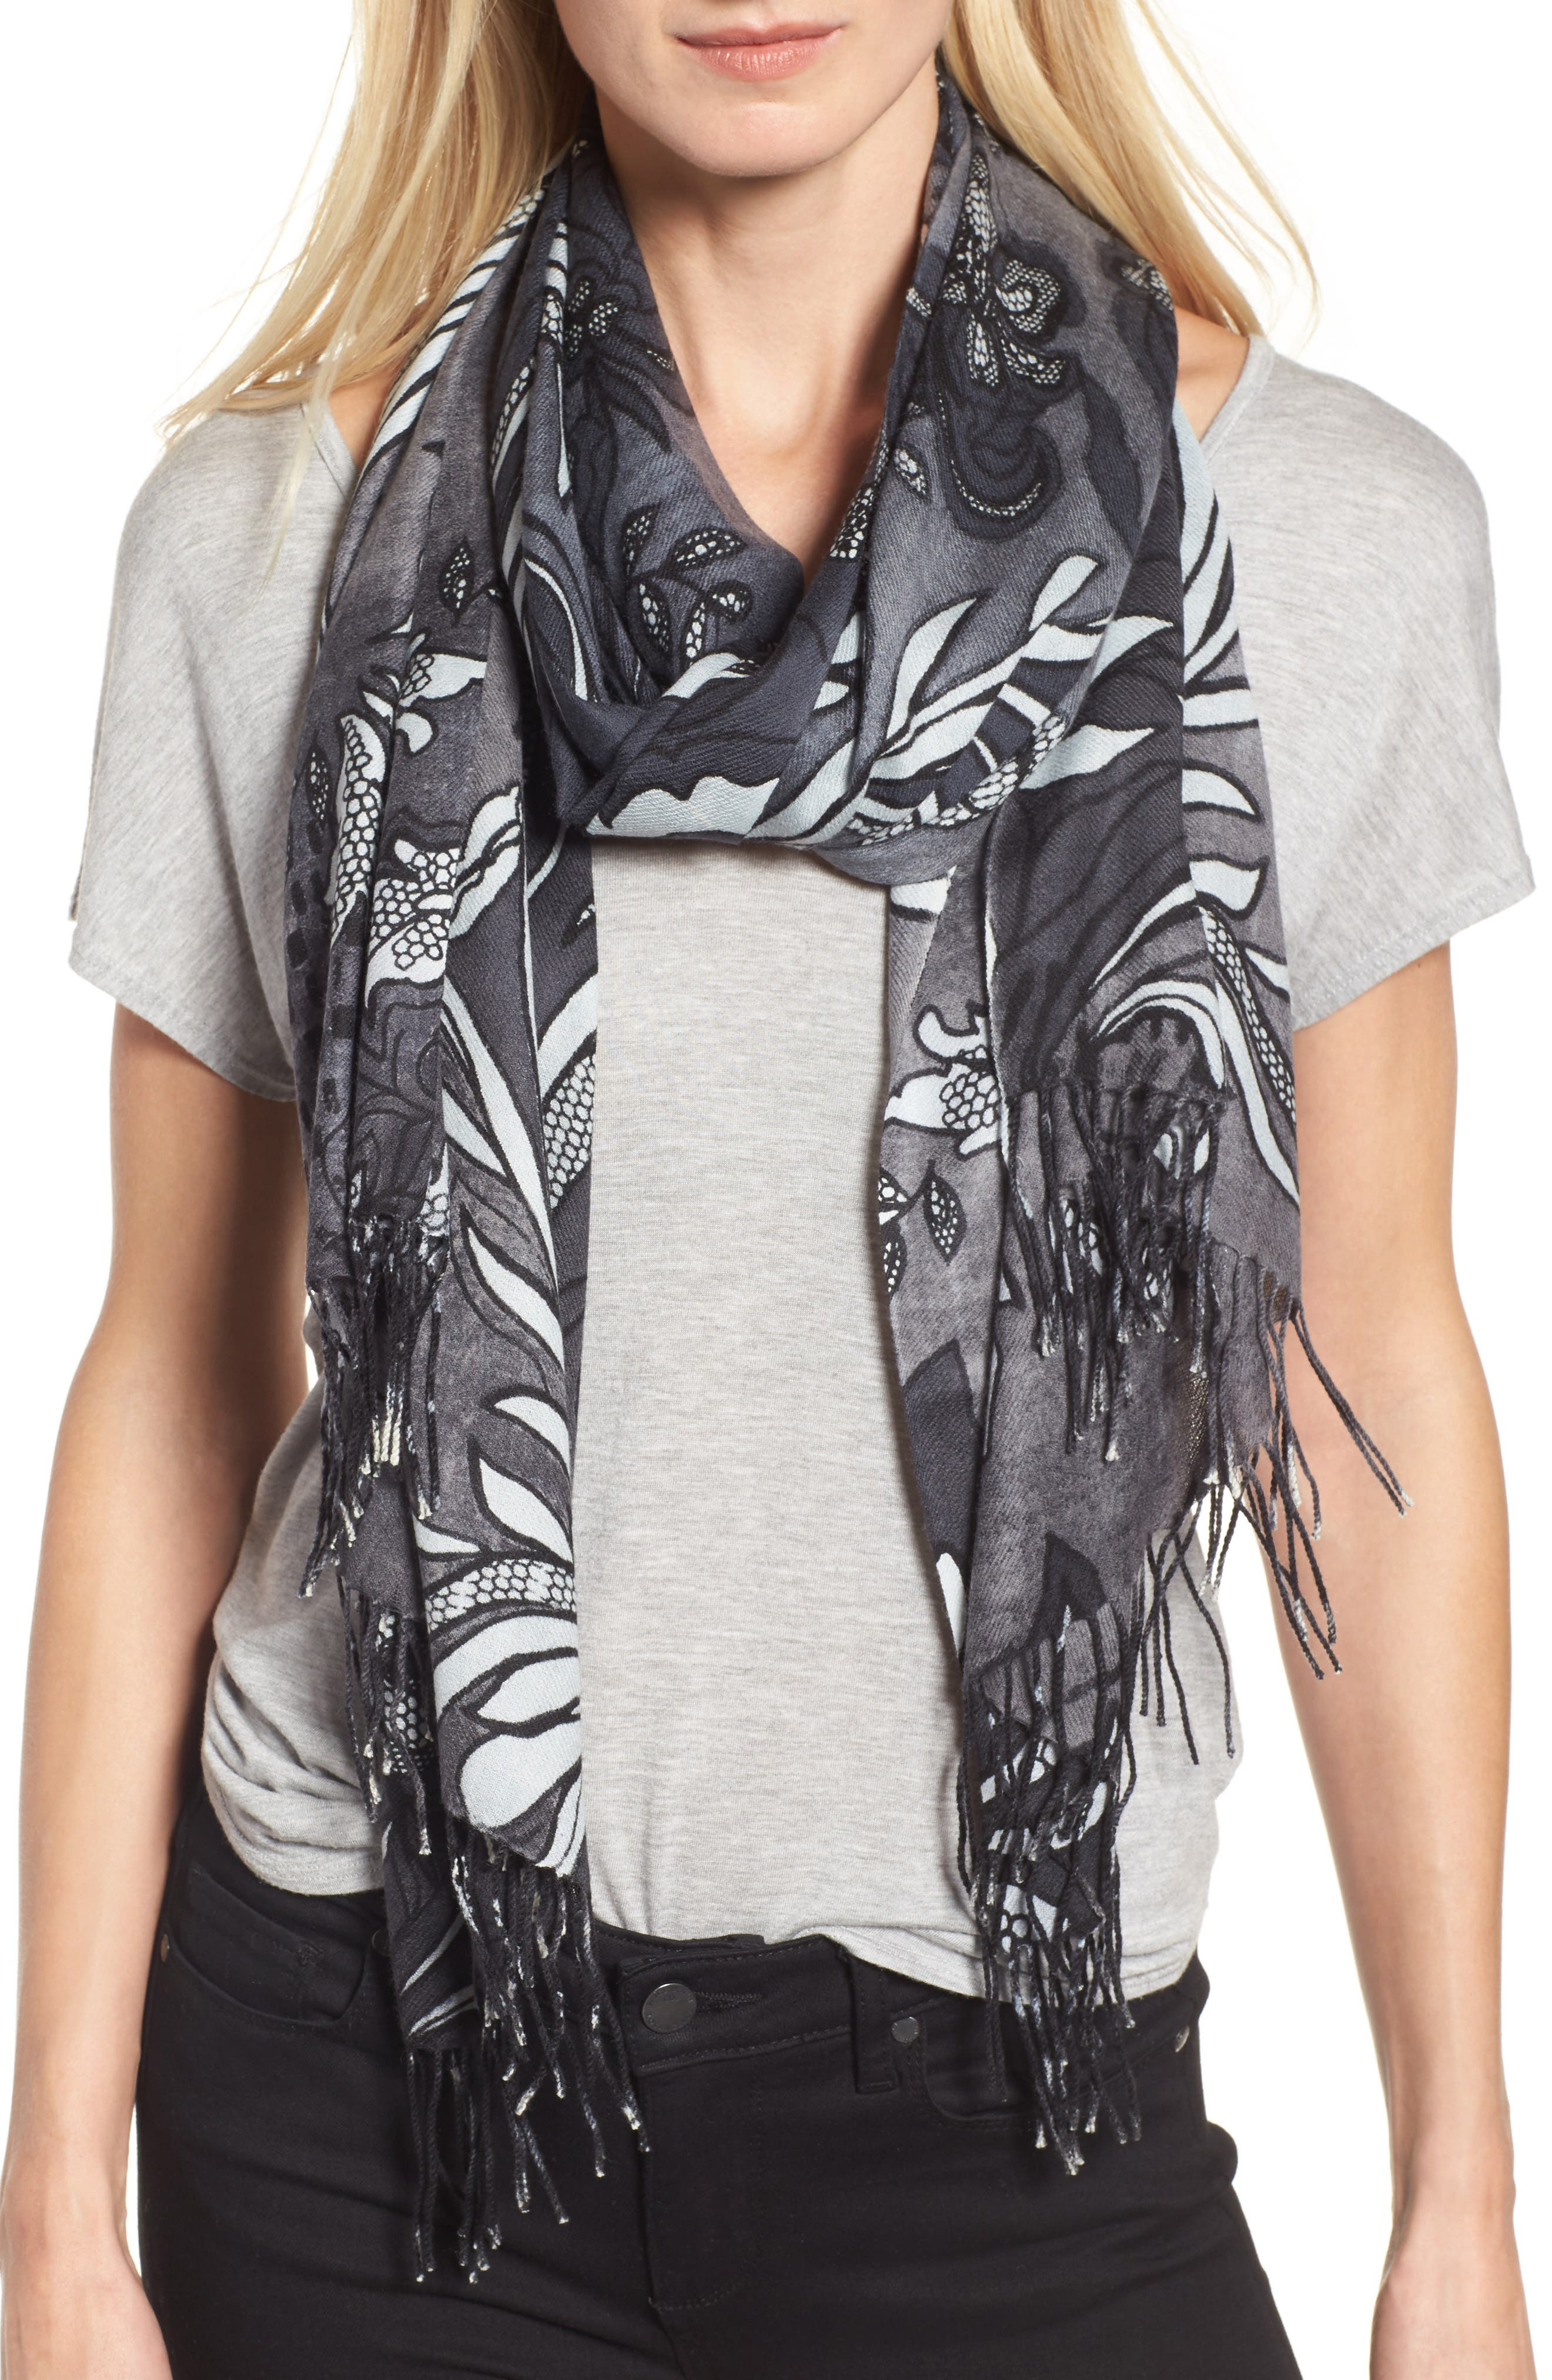 Viennese Floral Tissue Wool & Cashmere Scarf,                         Main,                         color, 001